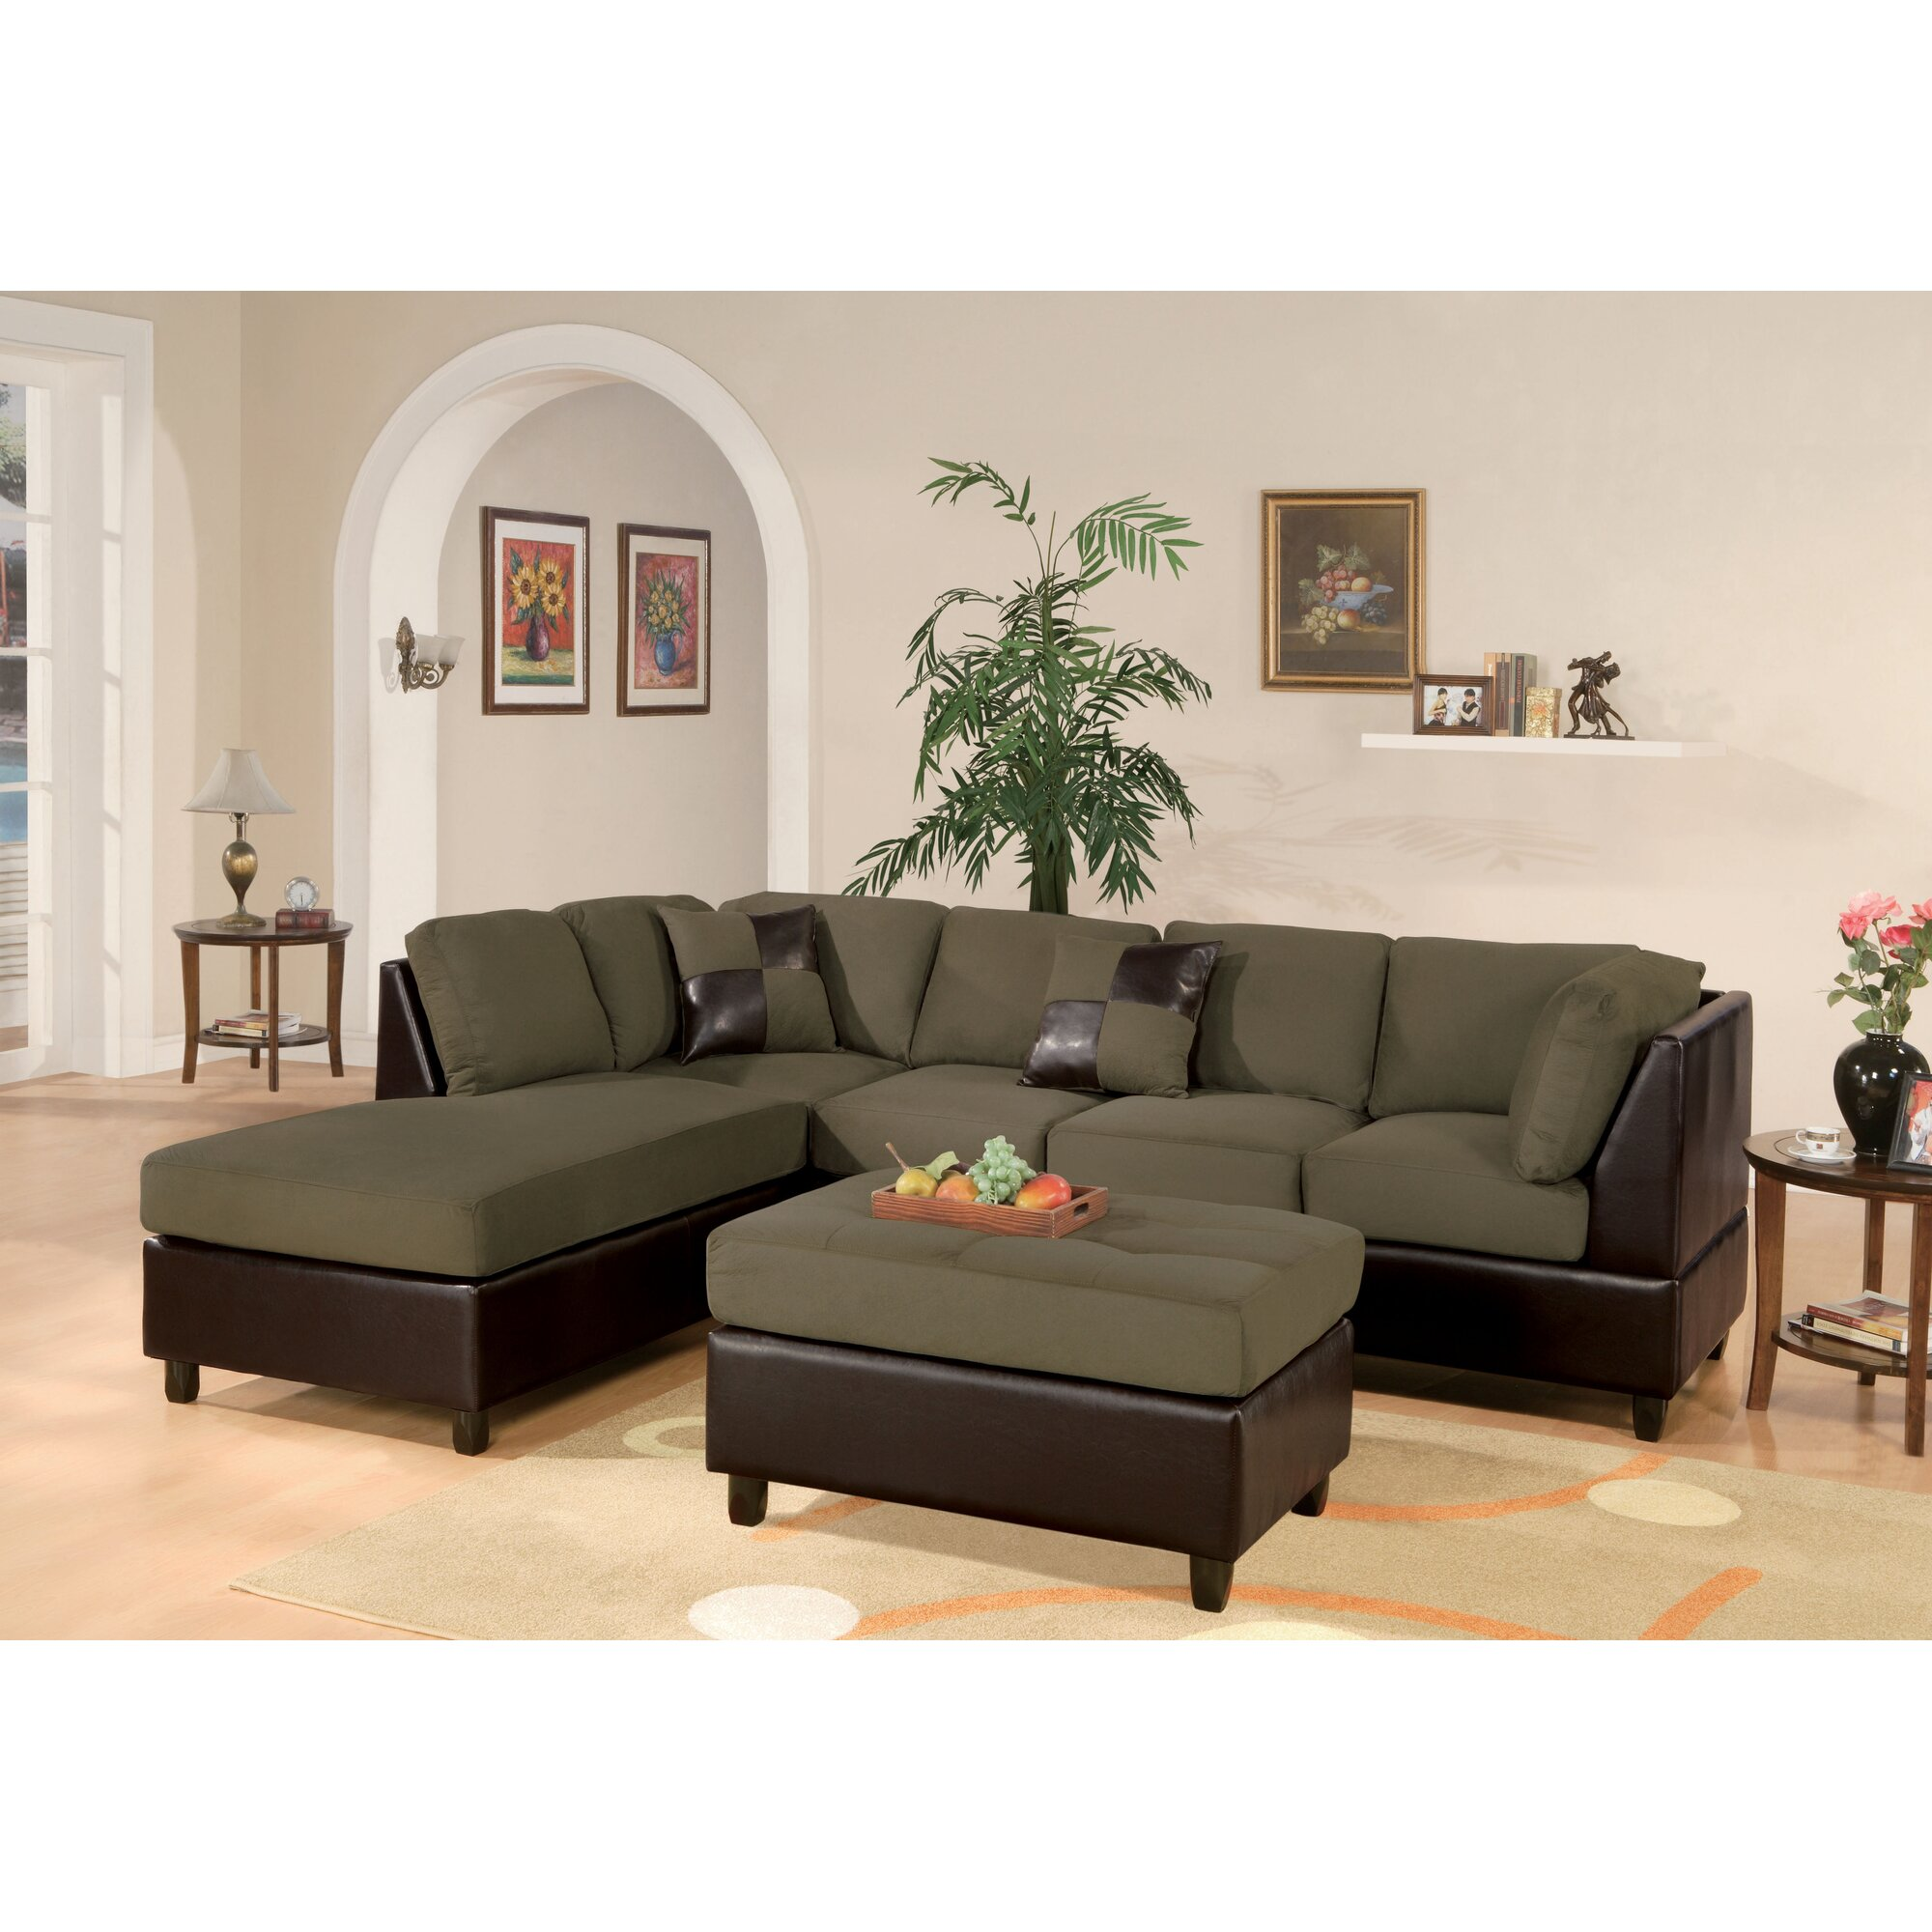 Where Do You Use A Sectional Sofa Exclusive Home Design